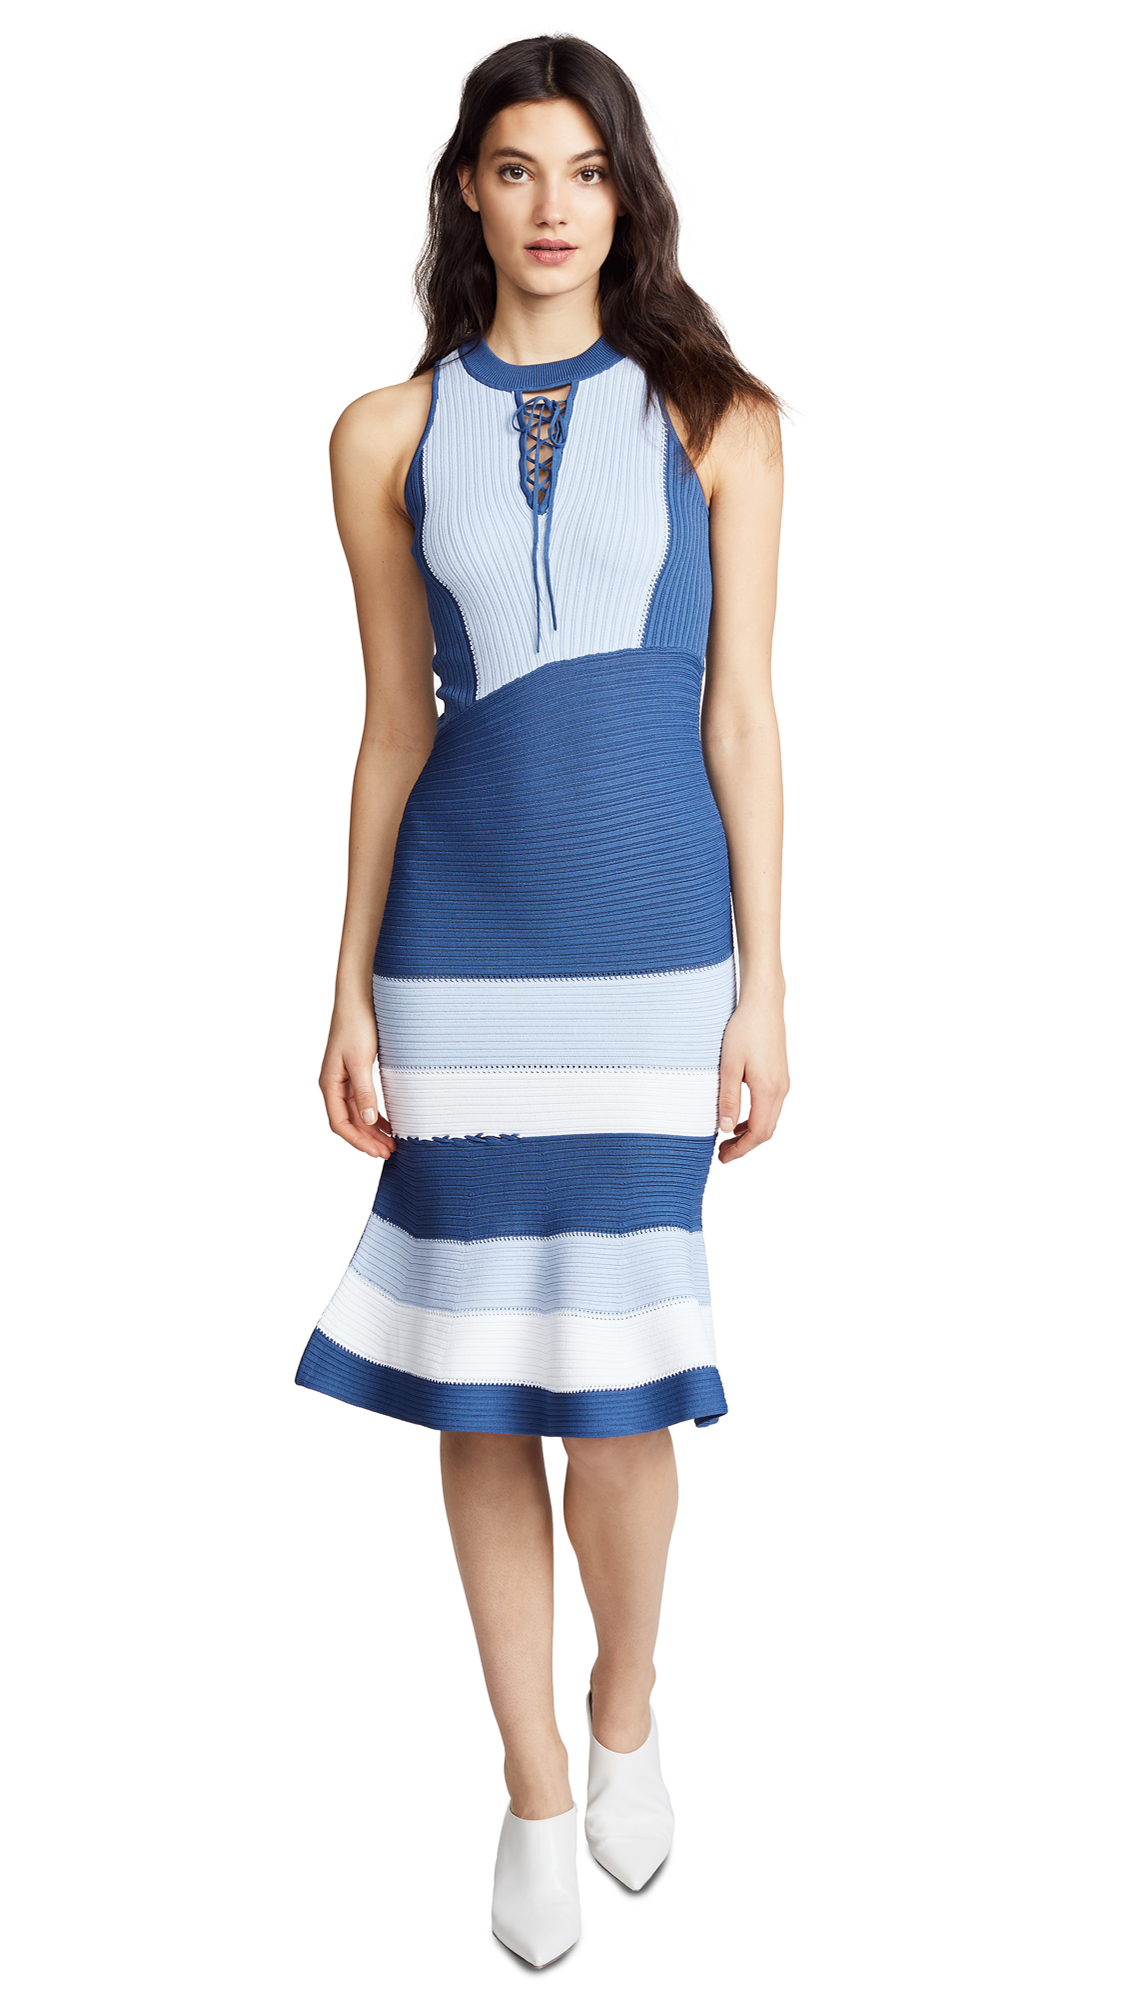 Jonathan Simkhai Linked Rib Asymmetric Dress